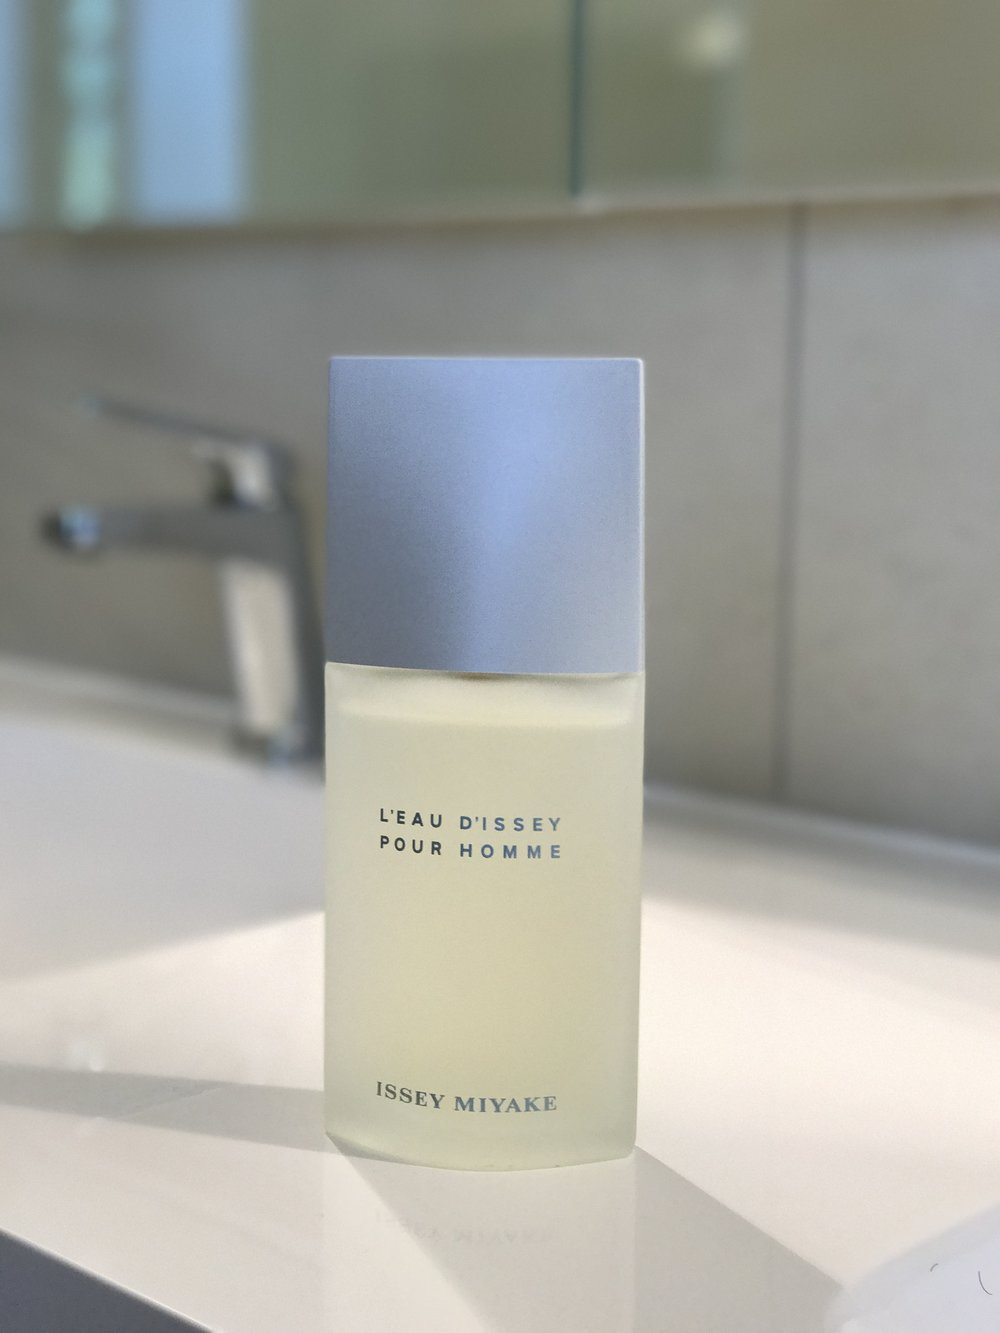 Issey Miyake Leau dissey pour homme fragrance worn by Jaheb Barnett